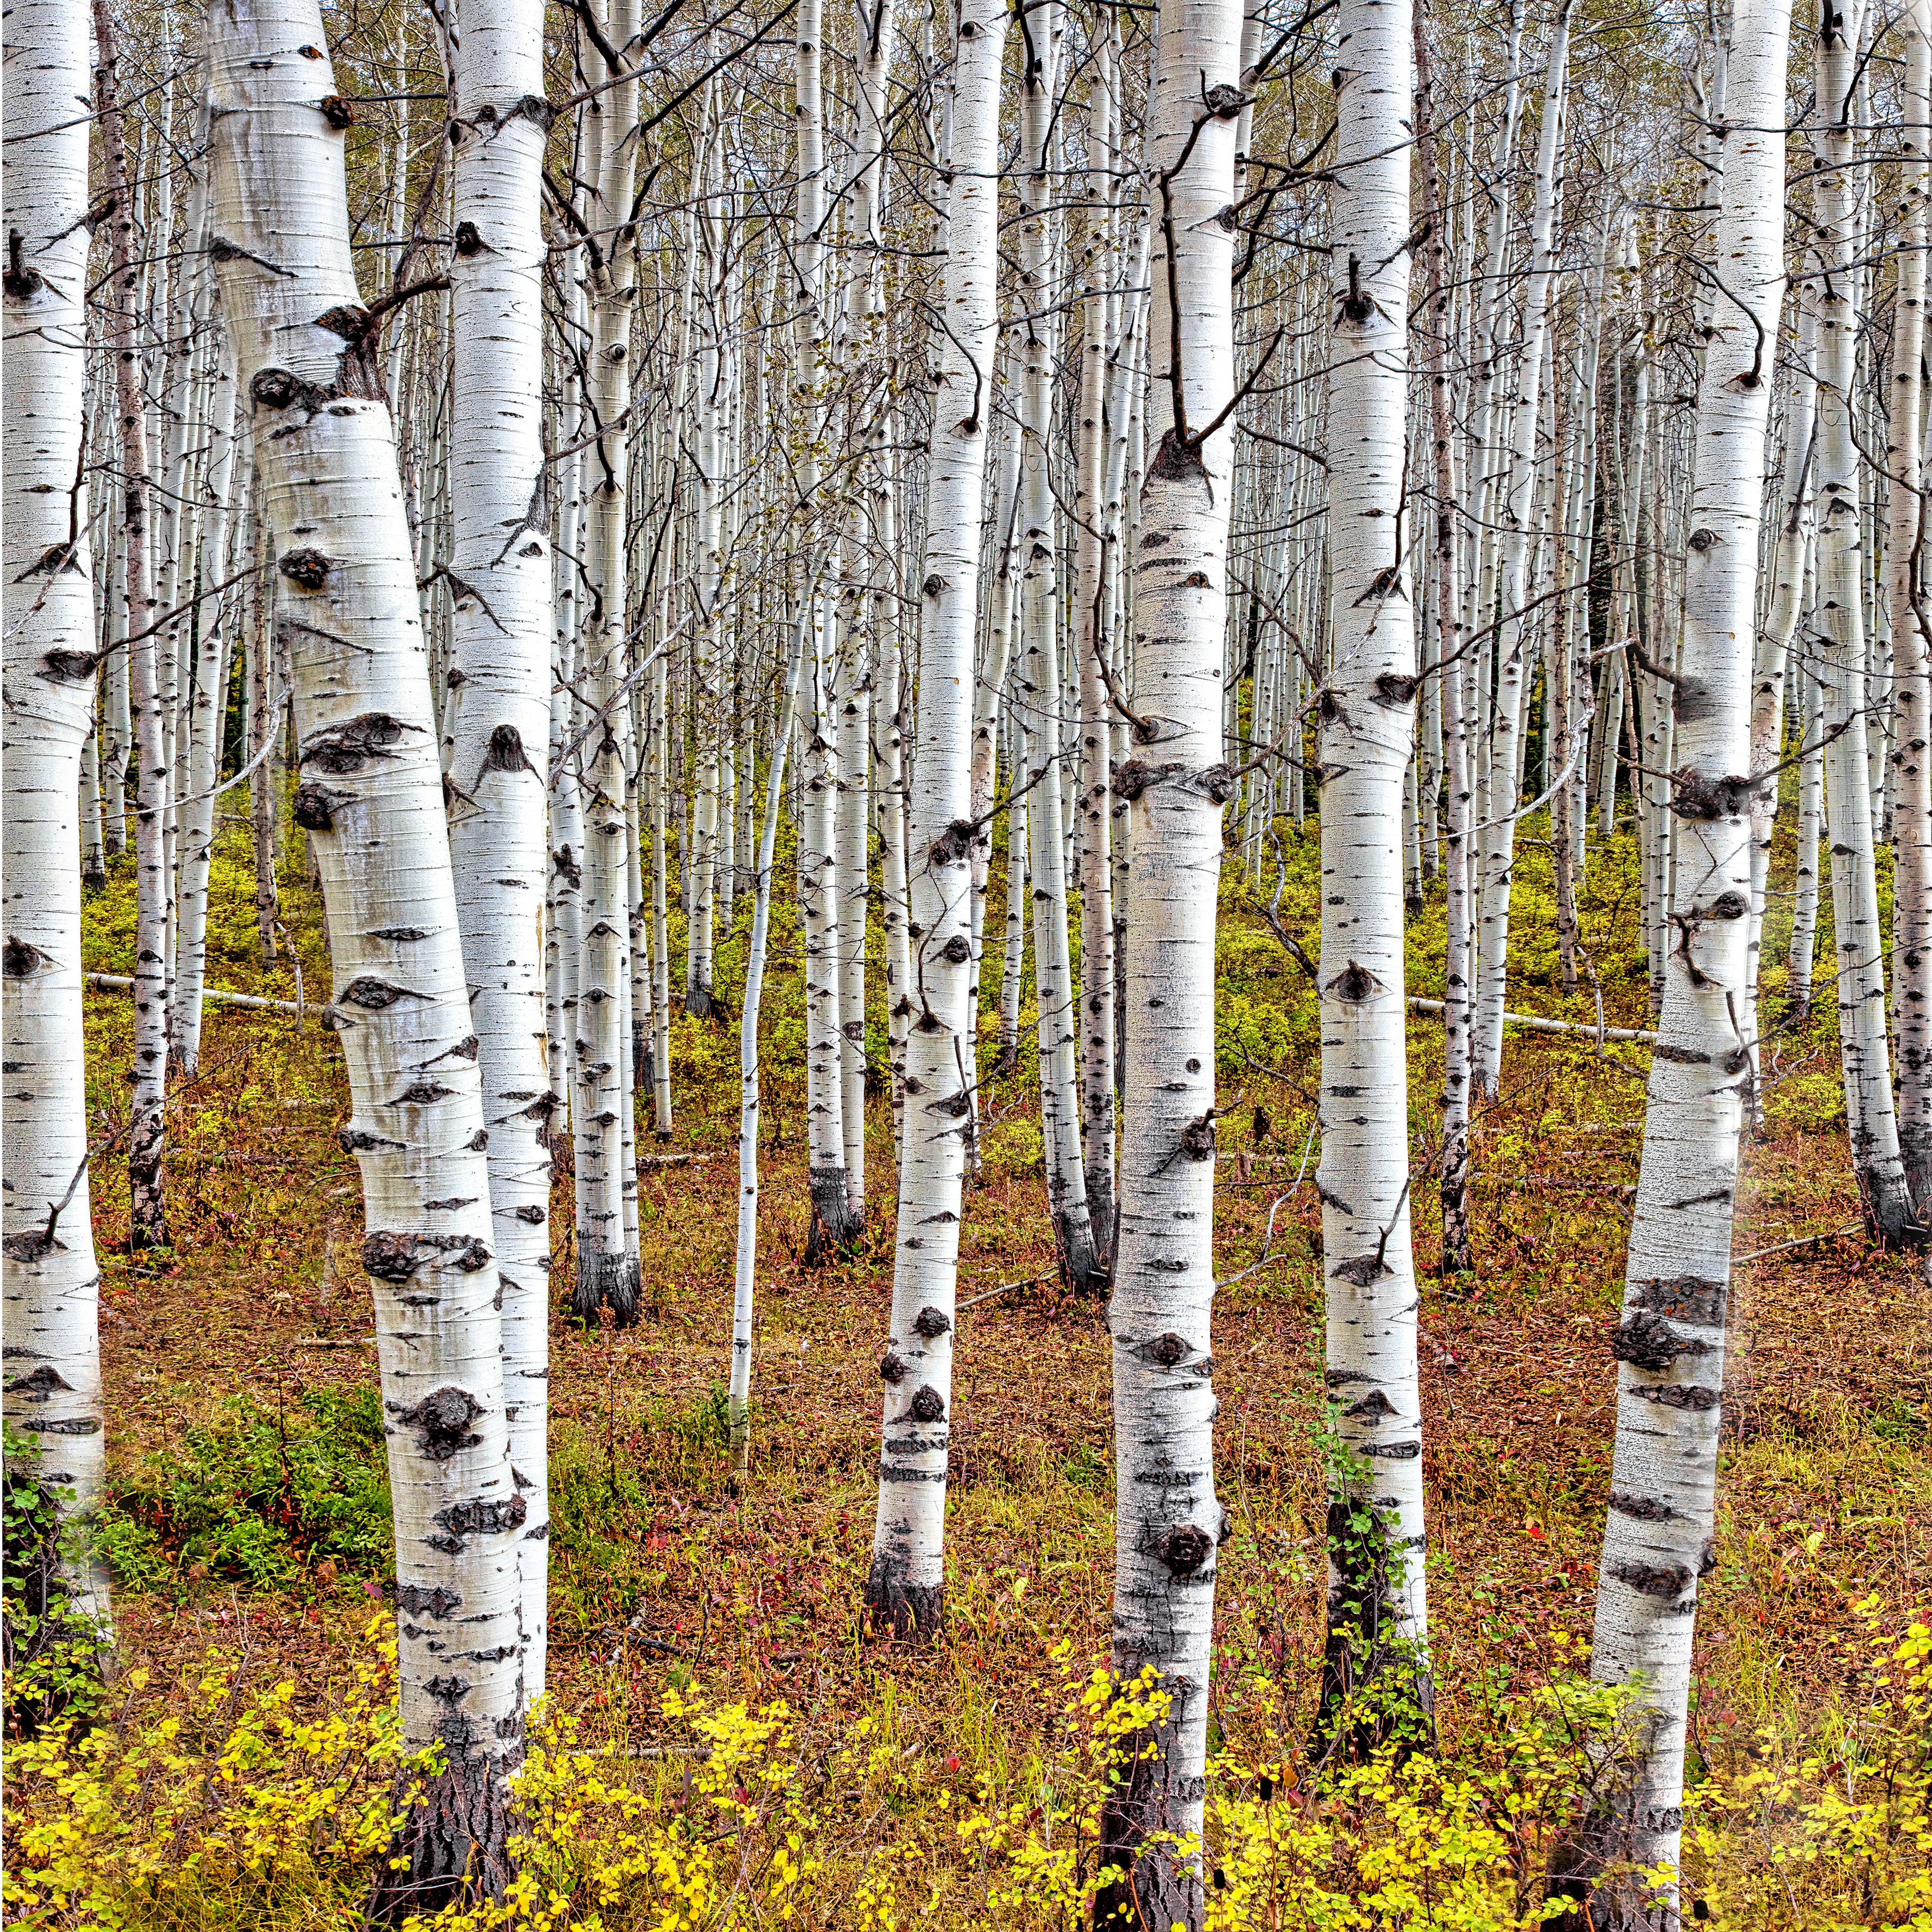 ASPEN TRUNKS - A favorit shot of many landscape photographers. I have tried several myself. I like this one,. but I am still looking.